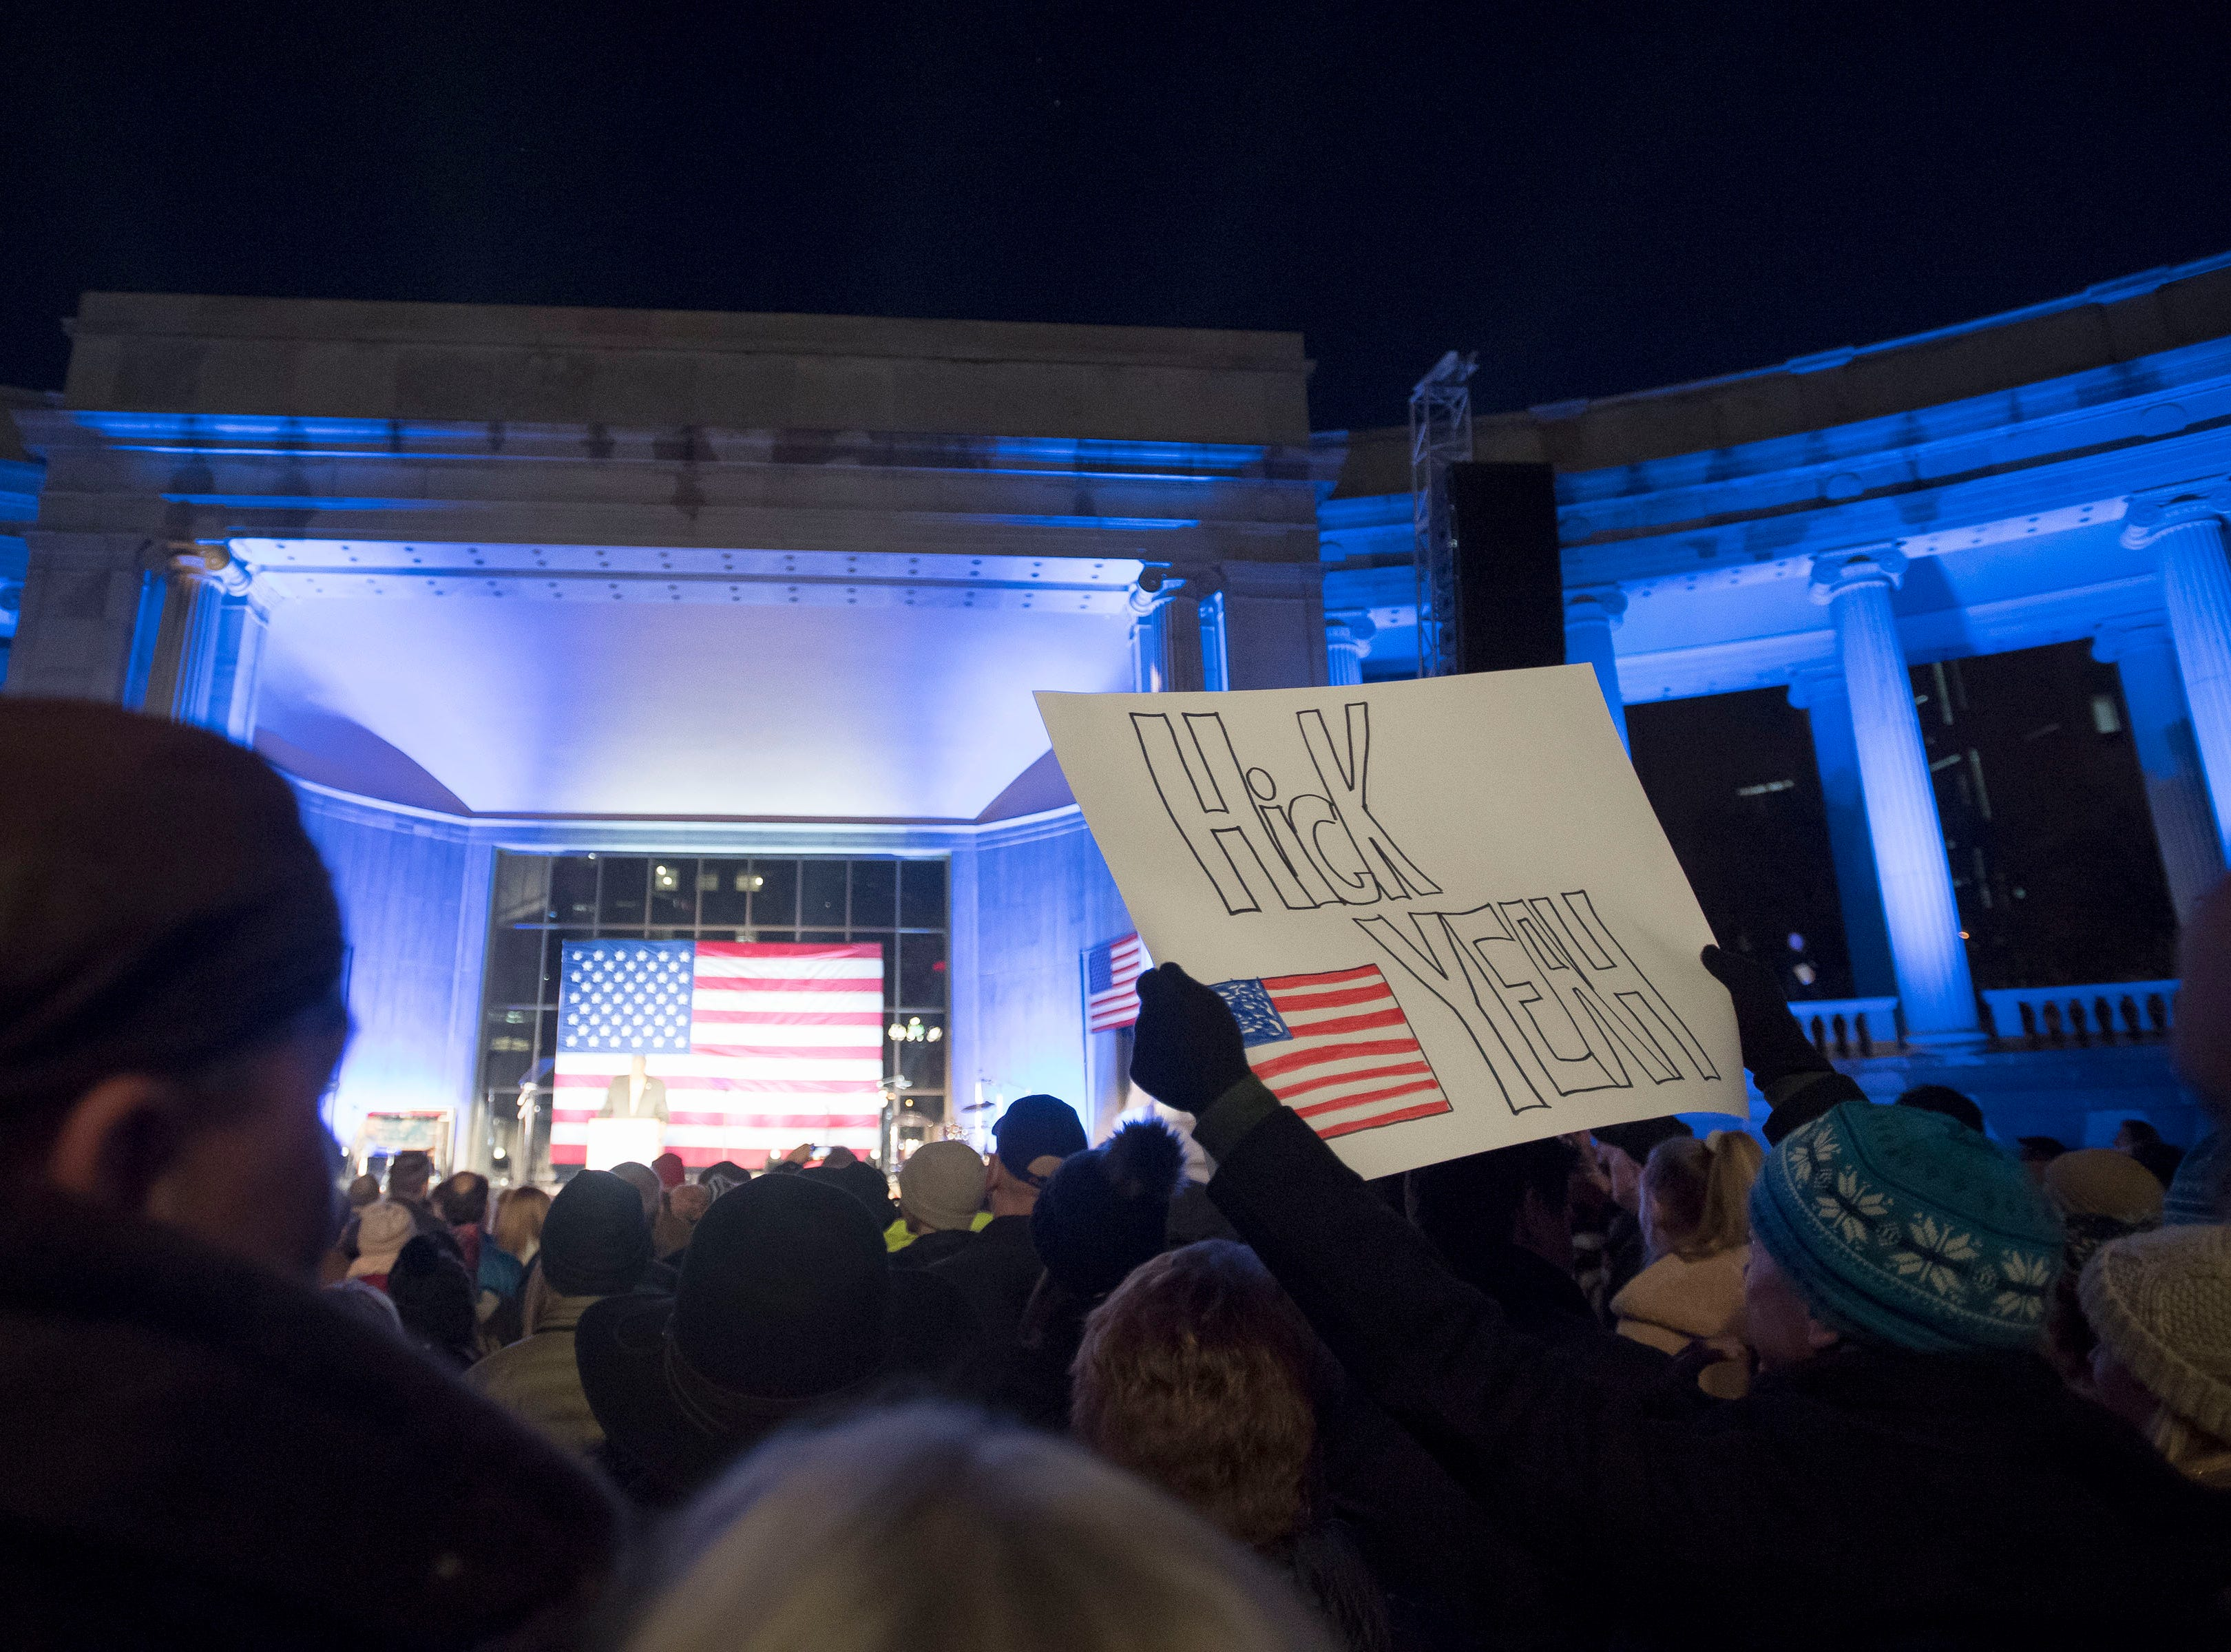 A rally participant holds up a sign during the John Hickenlooper presidential campaign kick-off rally on Thursday, March 7, 2019, at the Greek Ampitheatre in Civic Center Park in Denver, Colo.